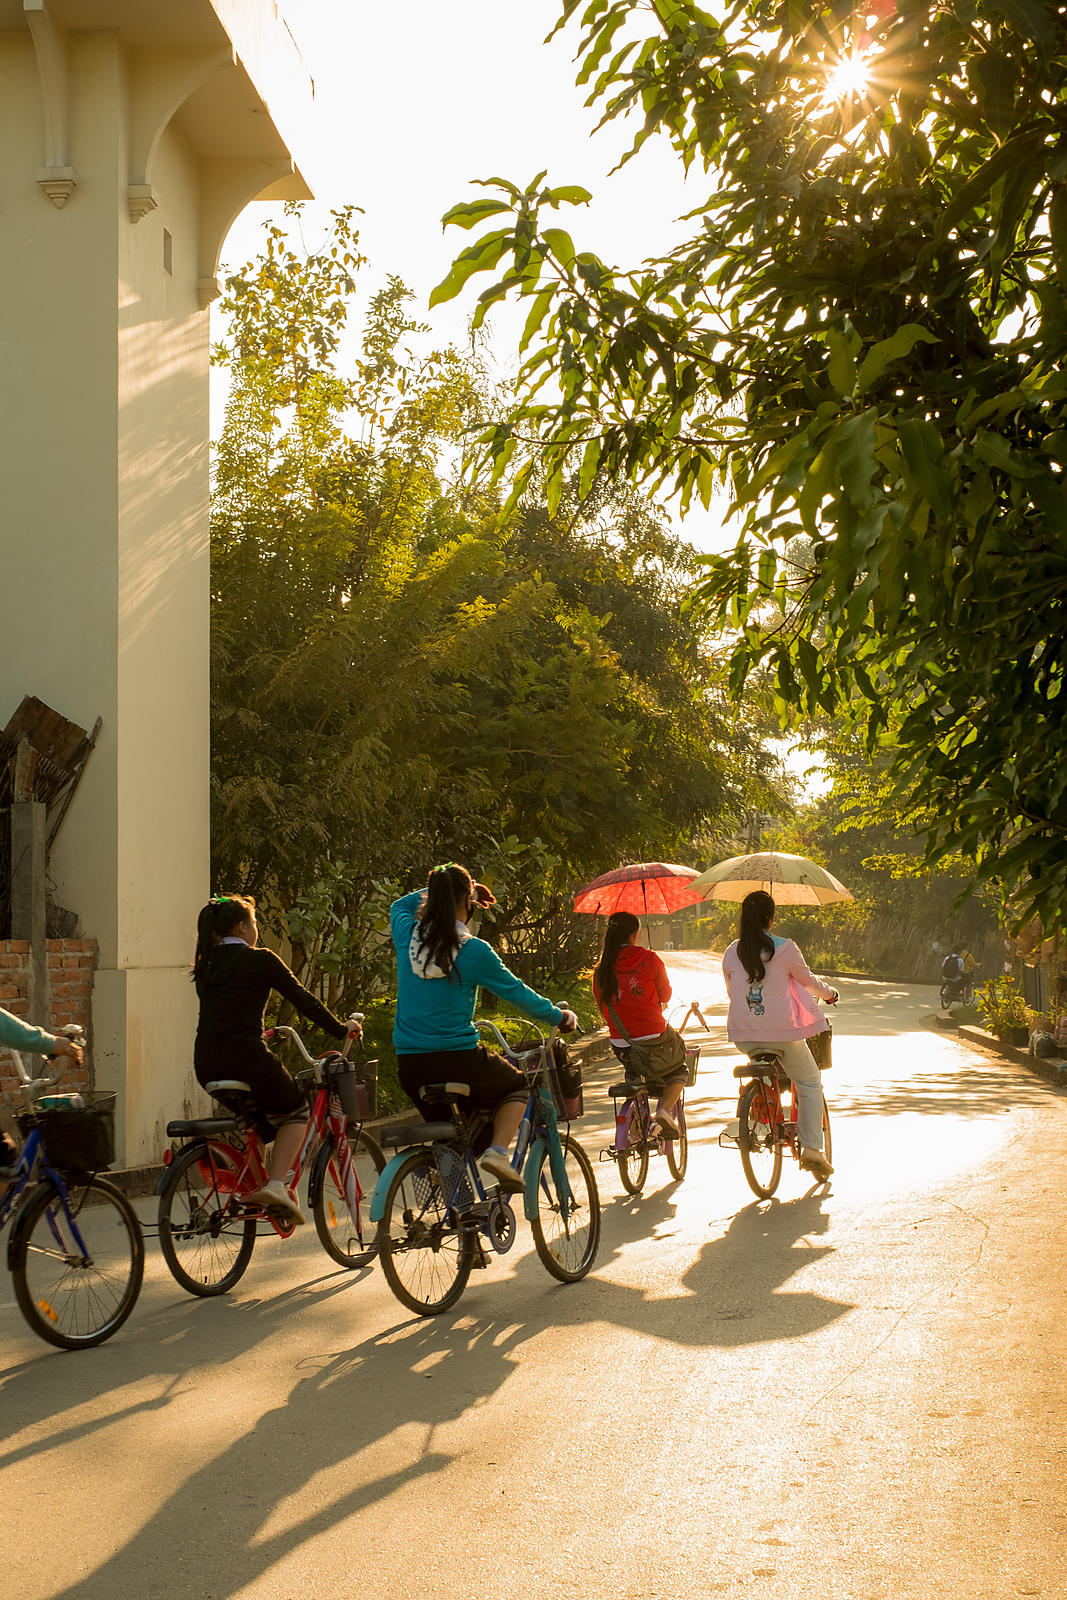 A group of young women riding bikes in the afternoon sun, Luang Prabang, Laos